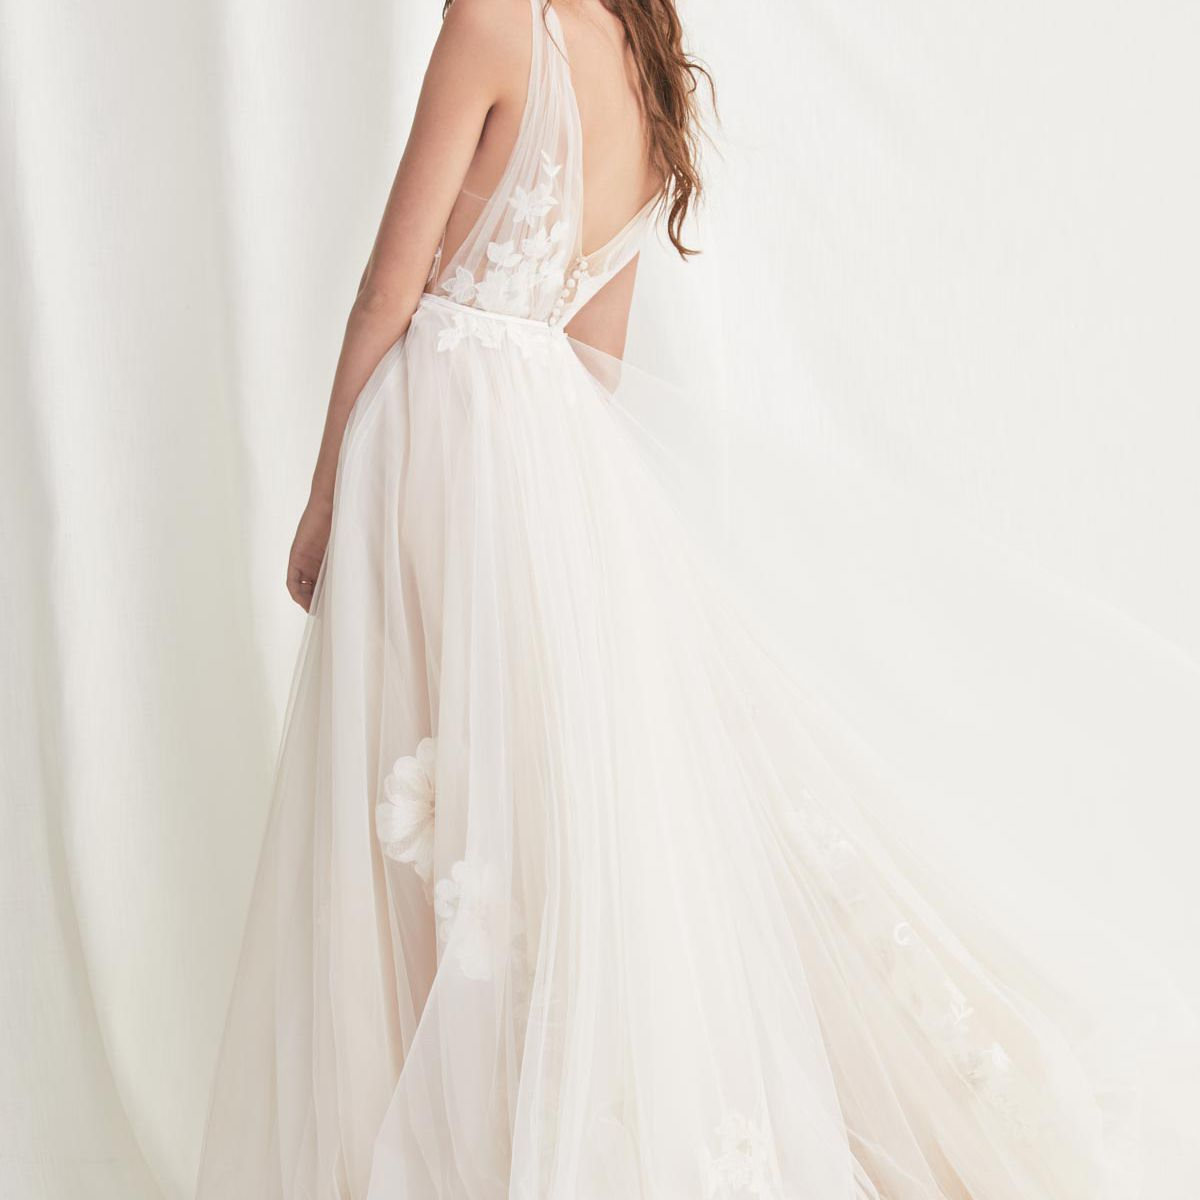 Model in low-back white tulle wedding gown with floral embellishment